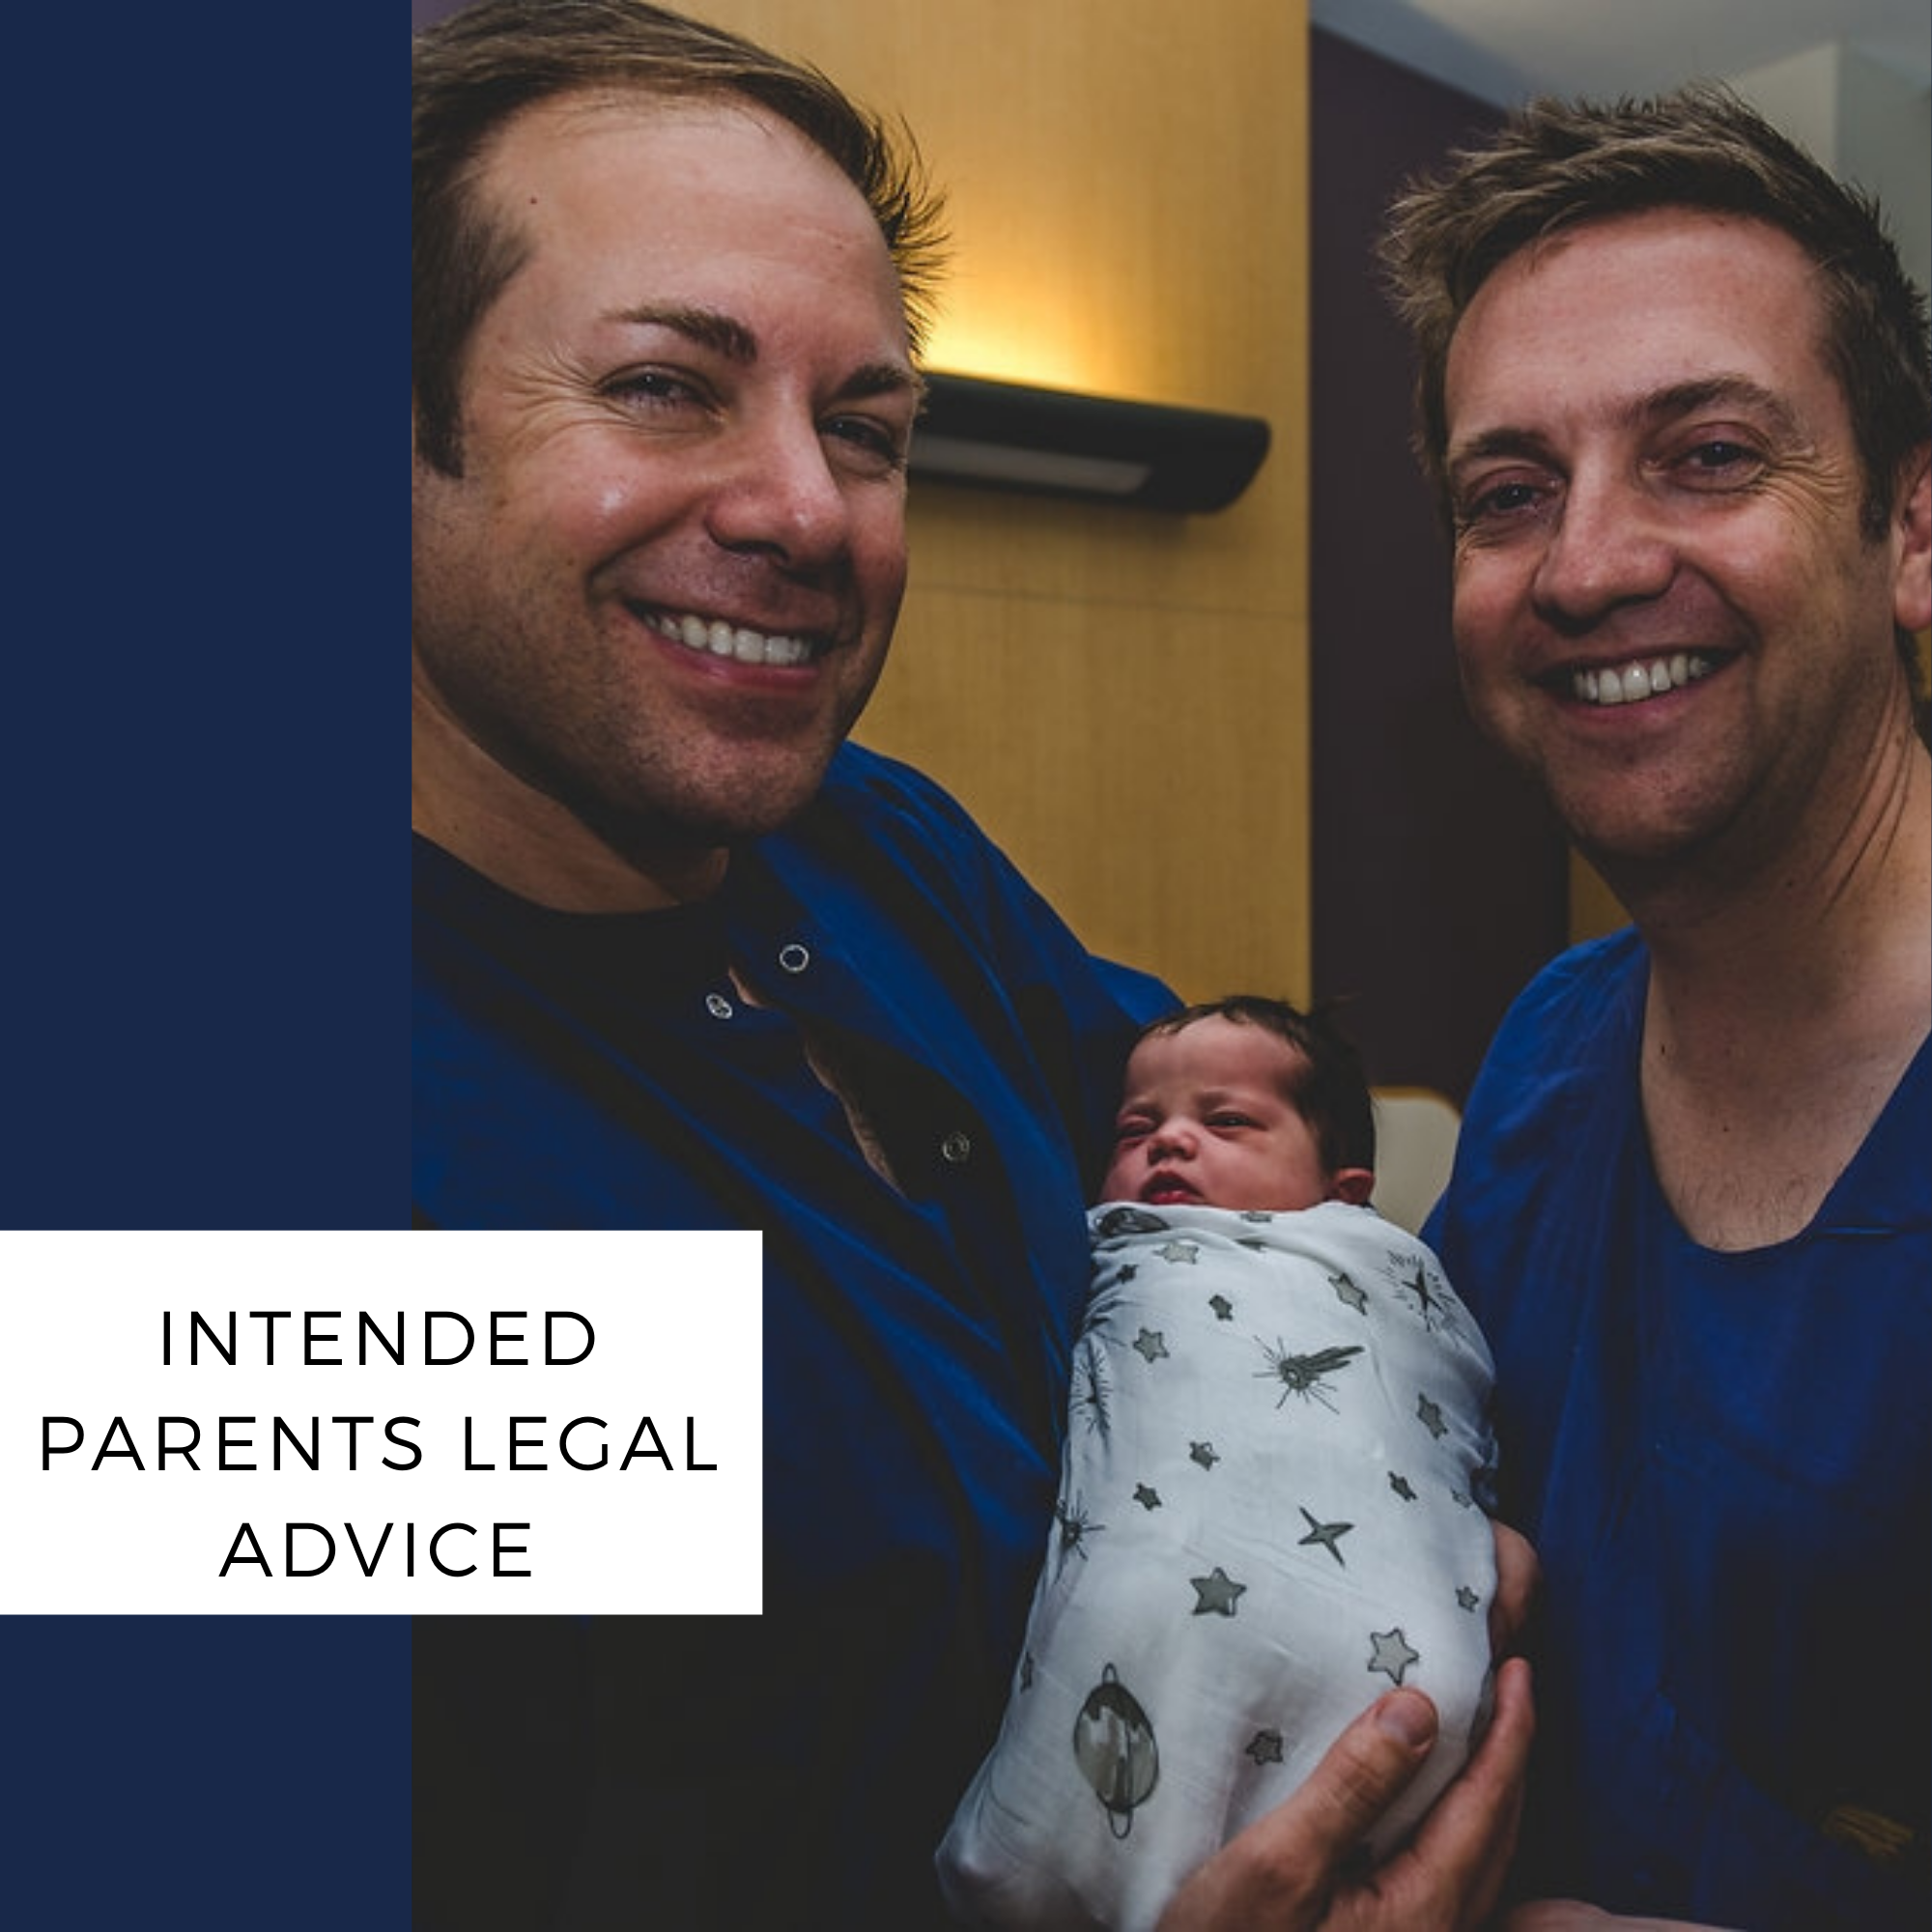 intended parents legal advice